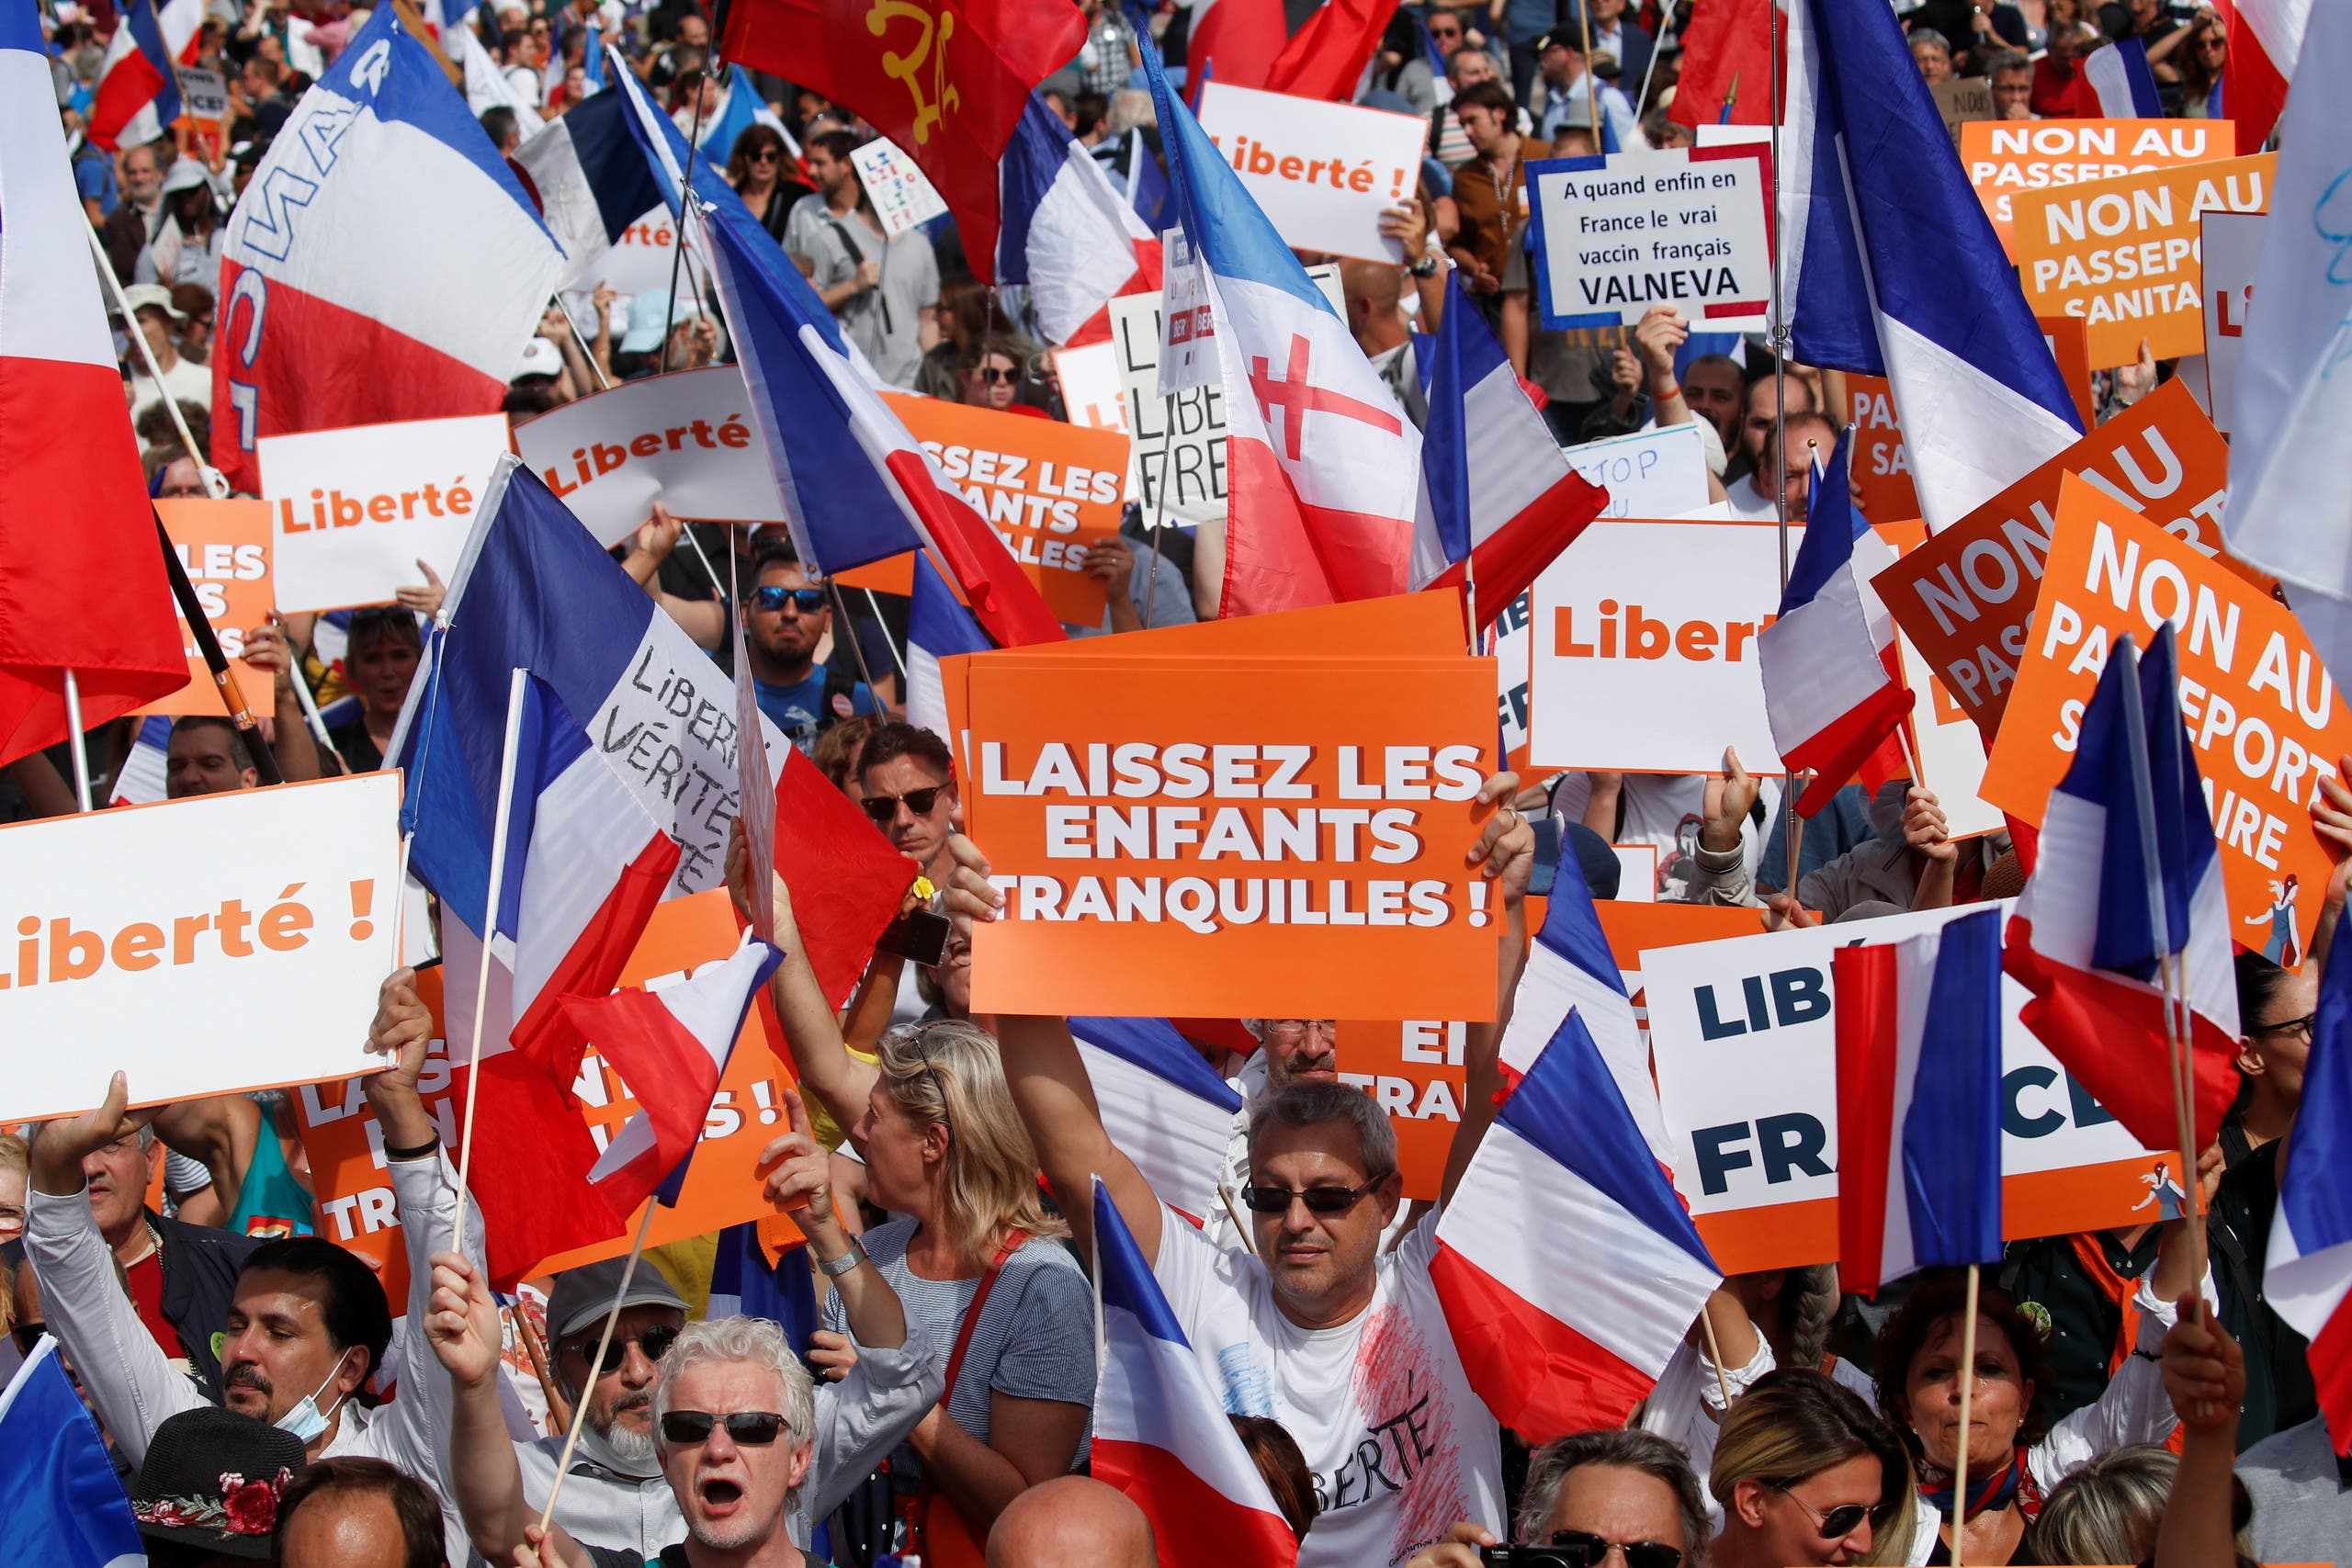 In France, the protest against the health permit continues, but the numbers drop